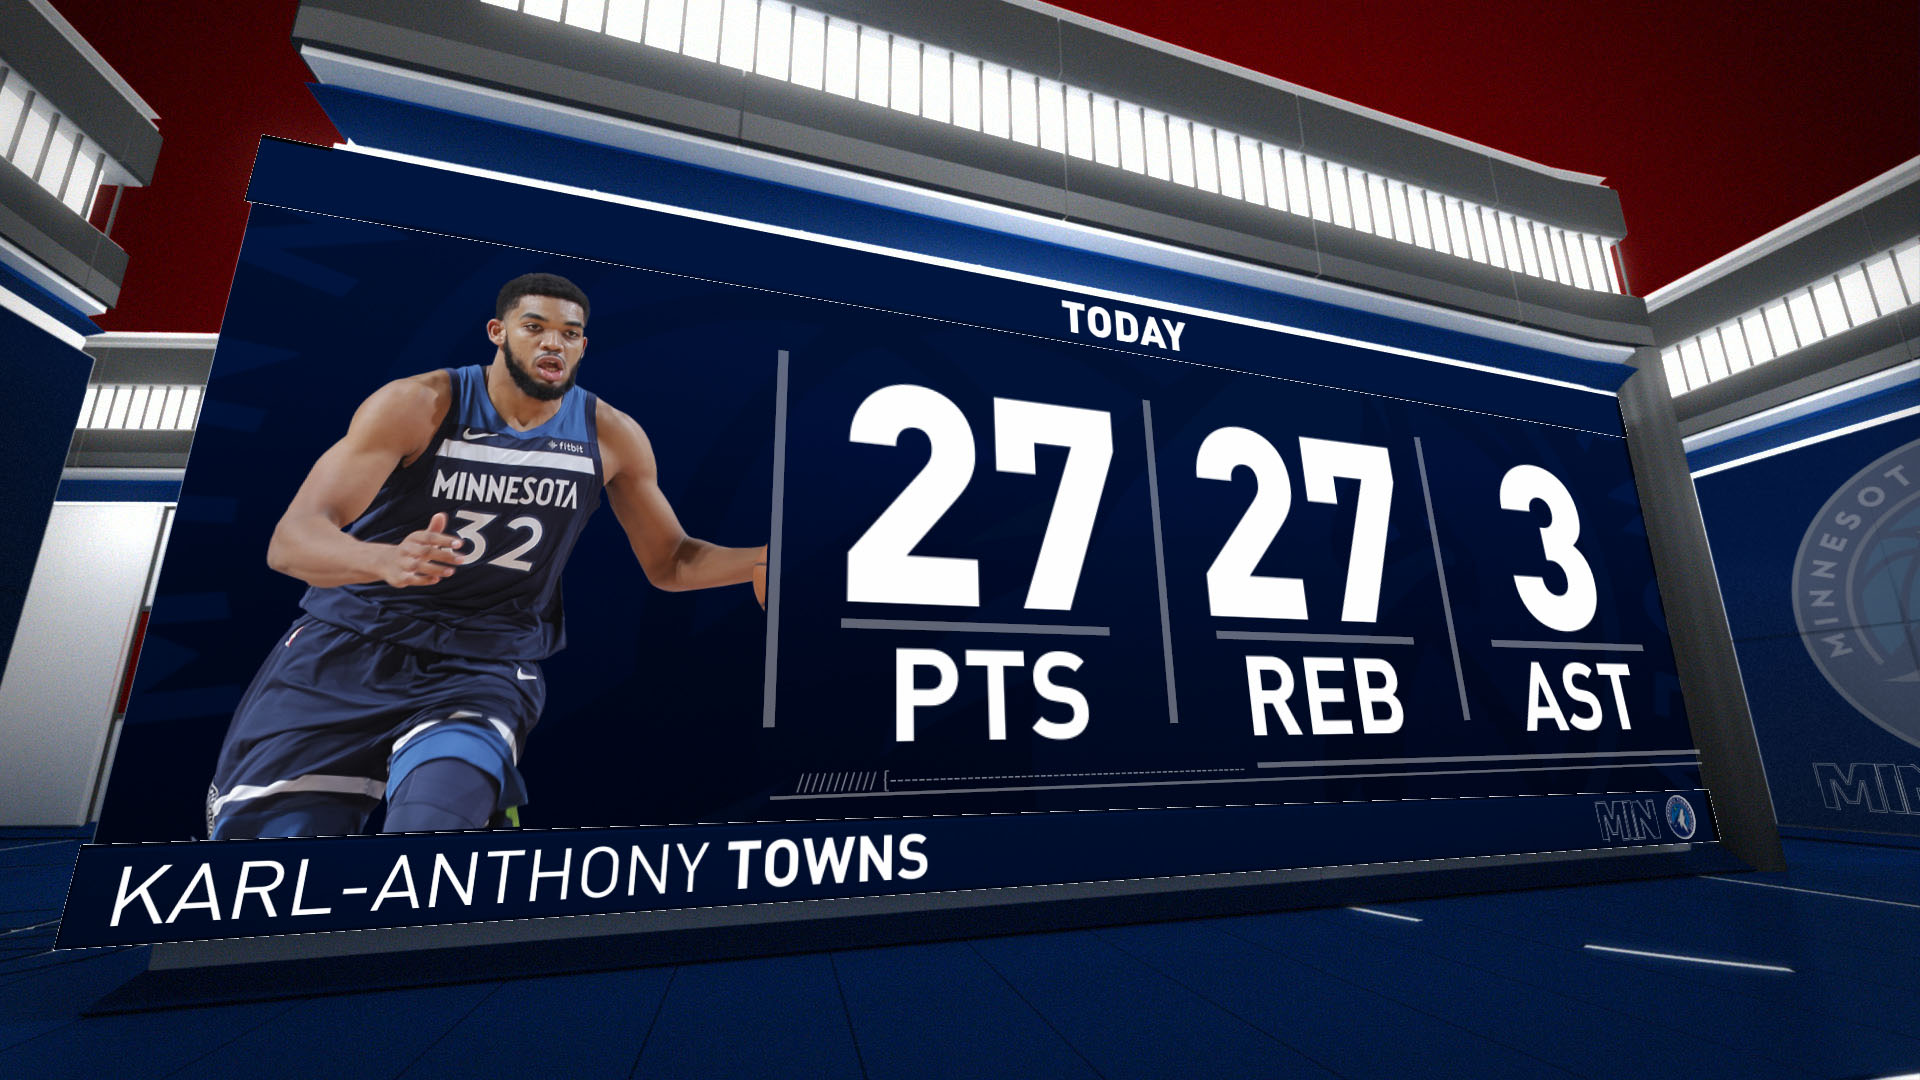 Highlights: Karl-Anthony Towns - Pelicans Vs. Timberwolves